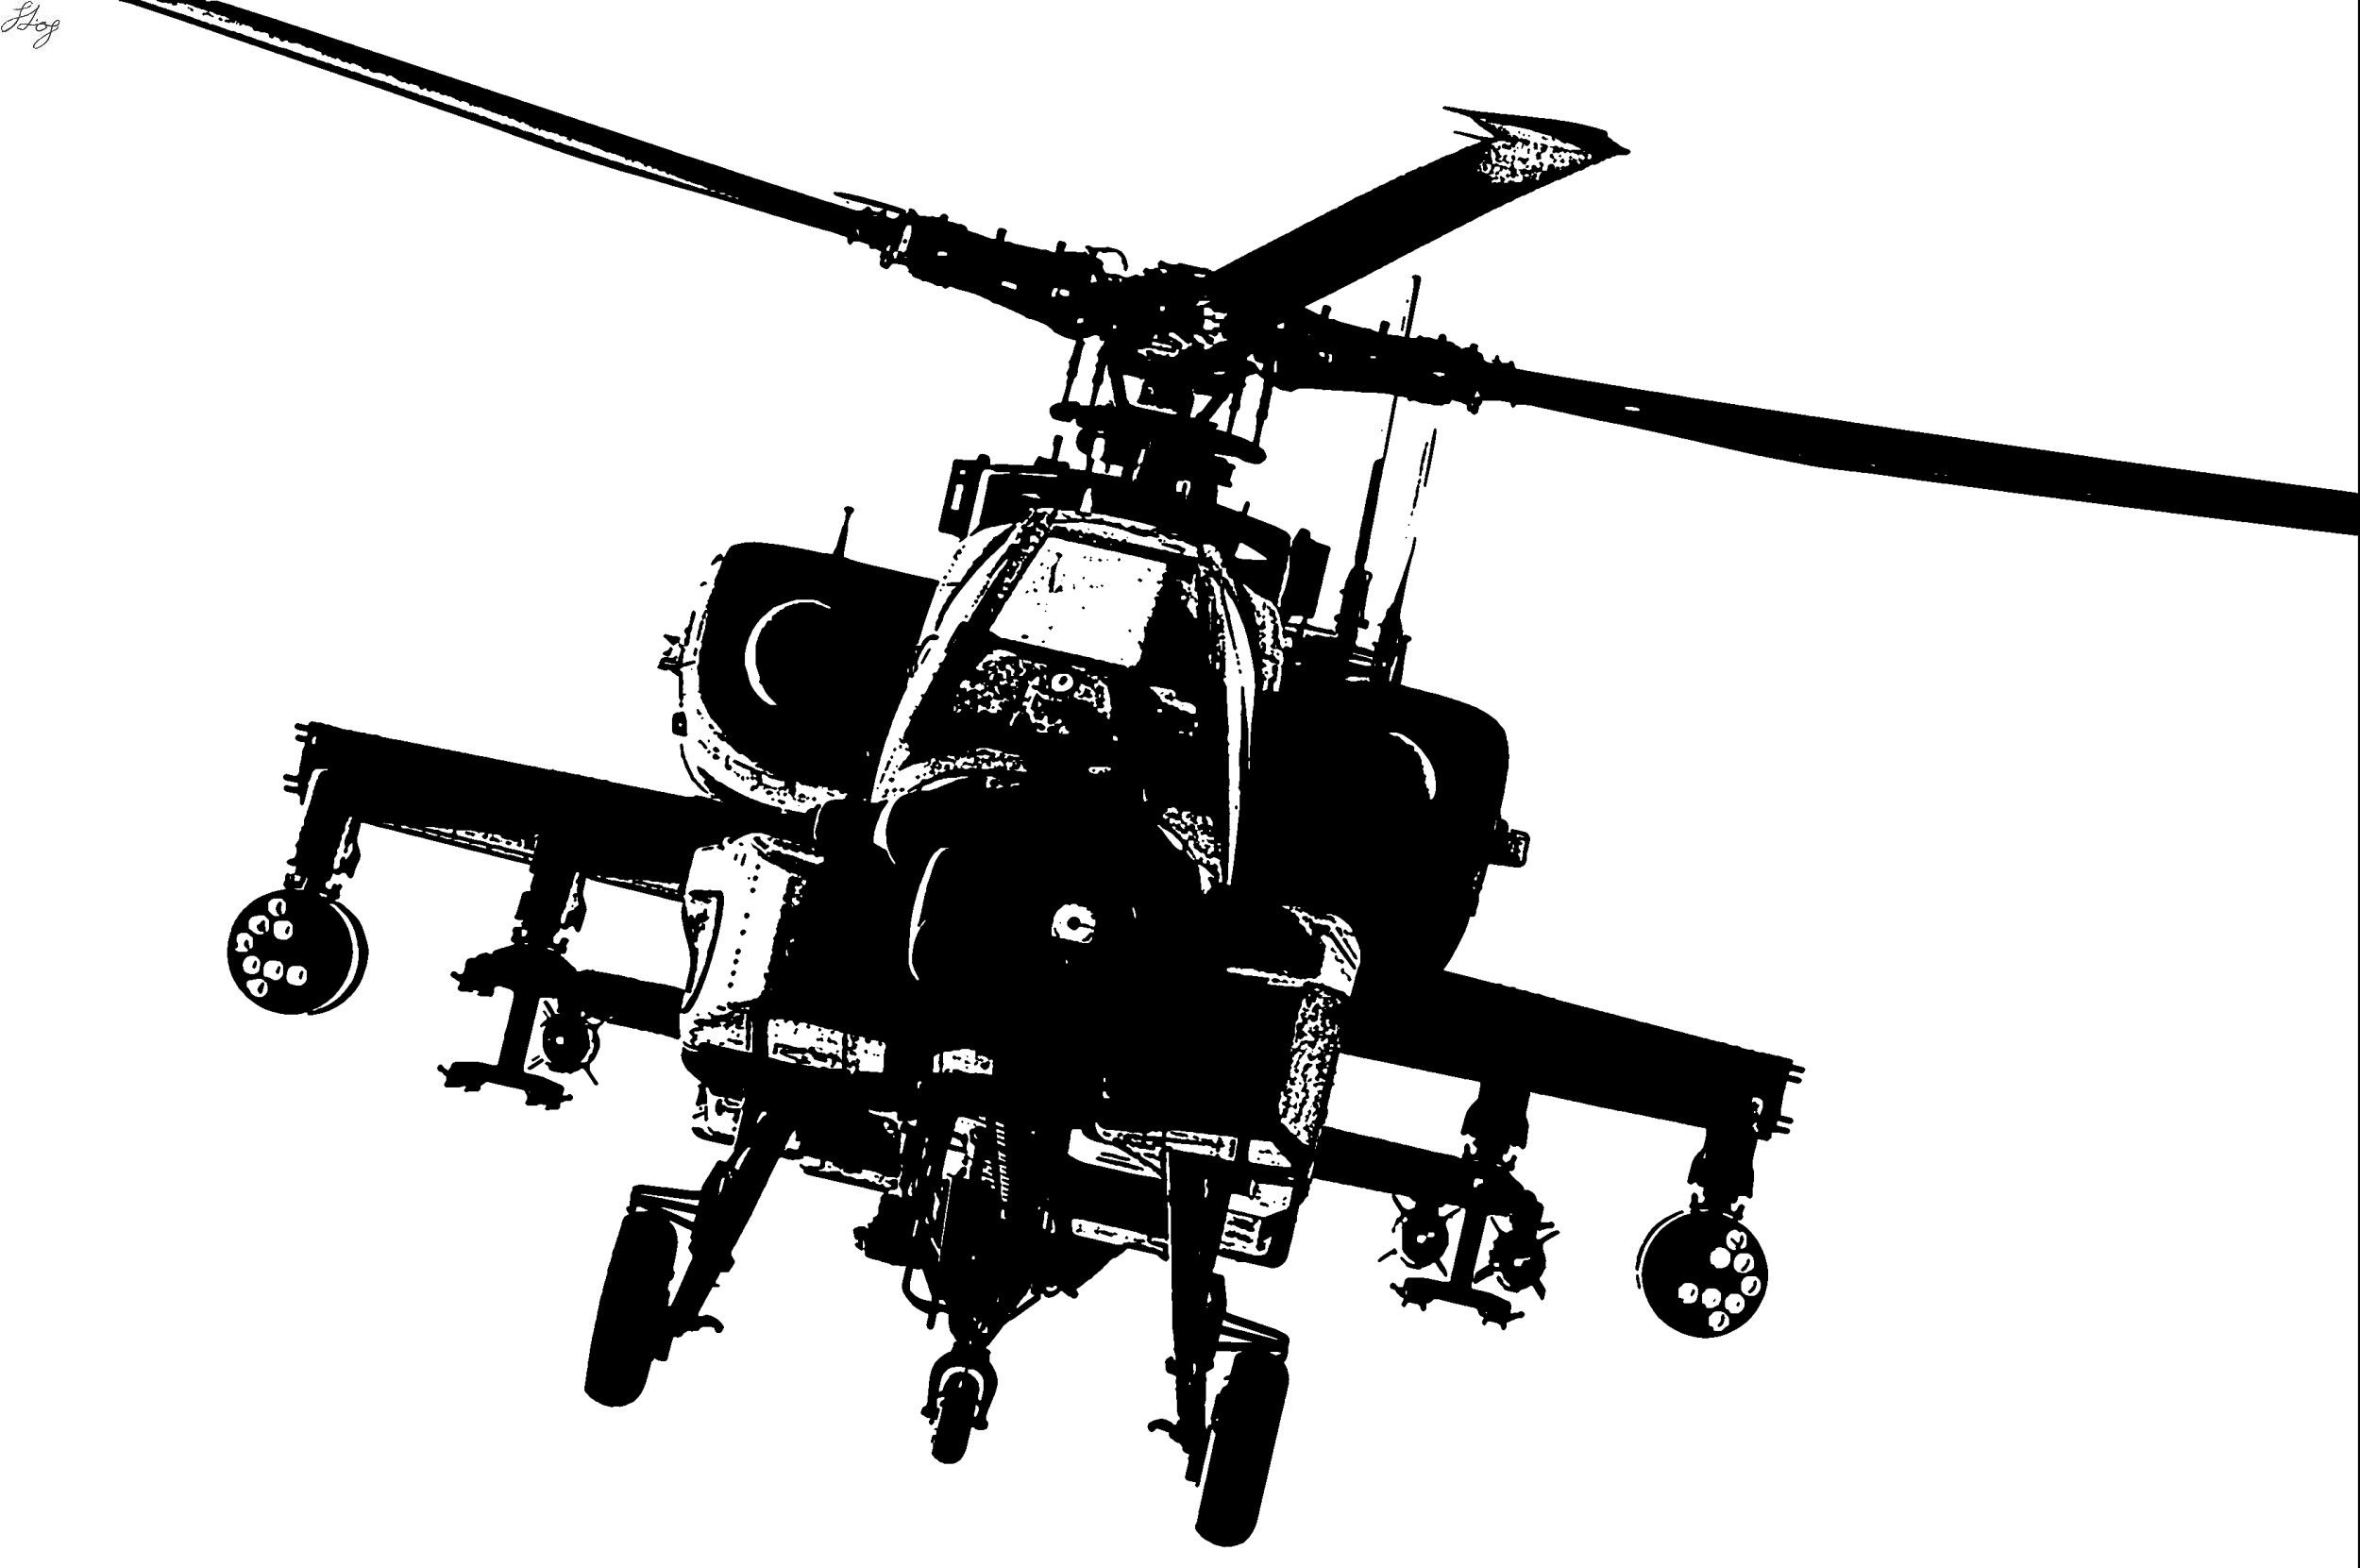 Helicopter clipart attack helicopter. Pin on beachwood mural